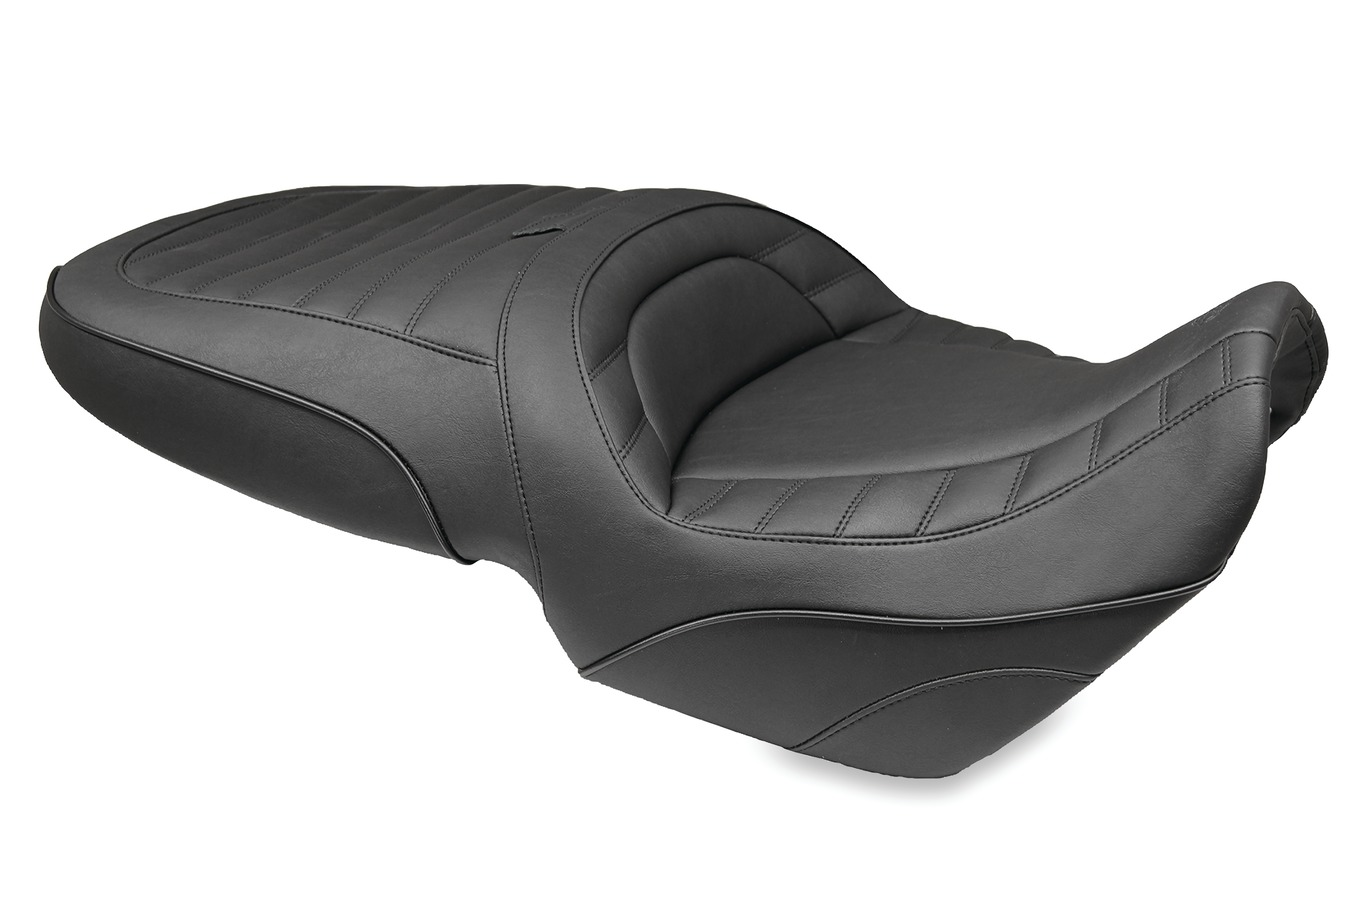 Standard Touring One-Piece Seat for Can-Am Spyder F3 2015-